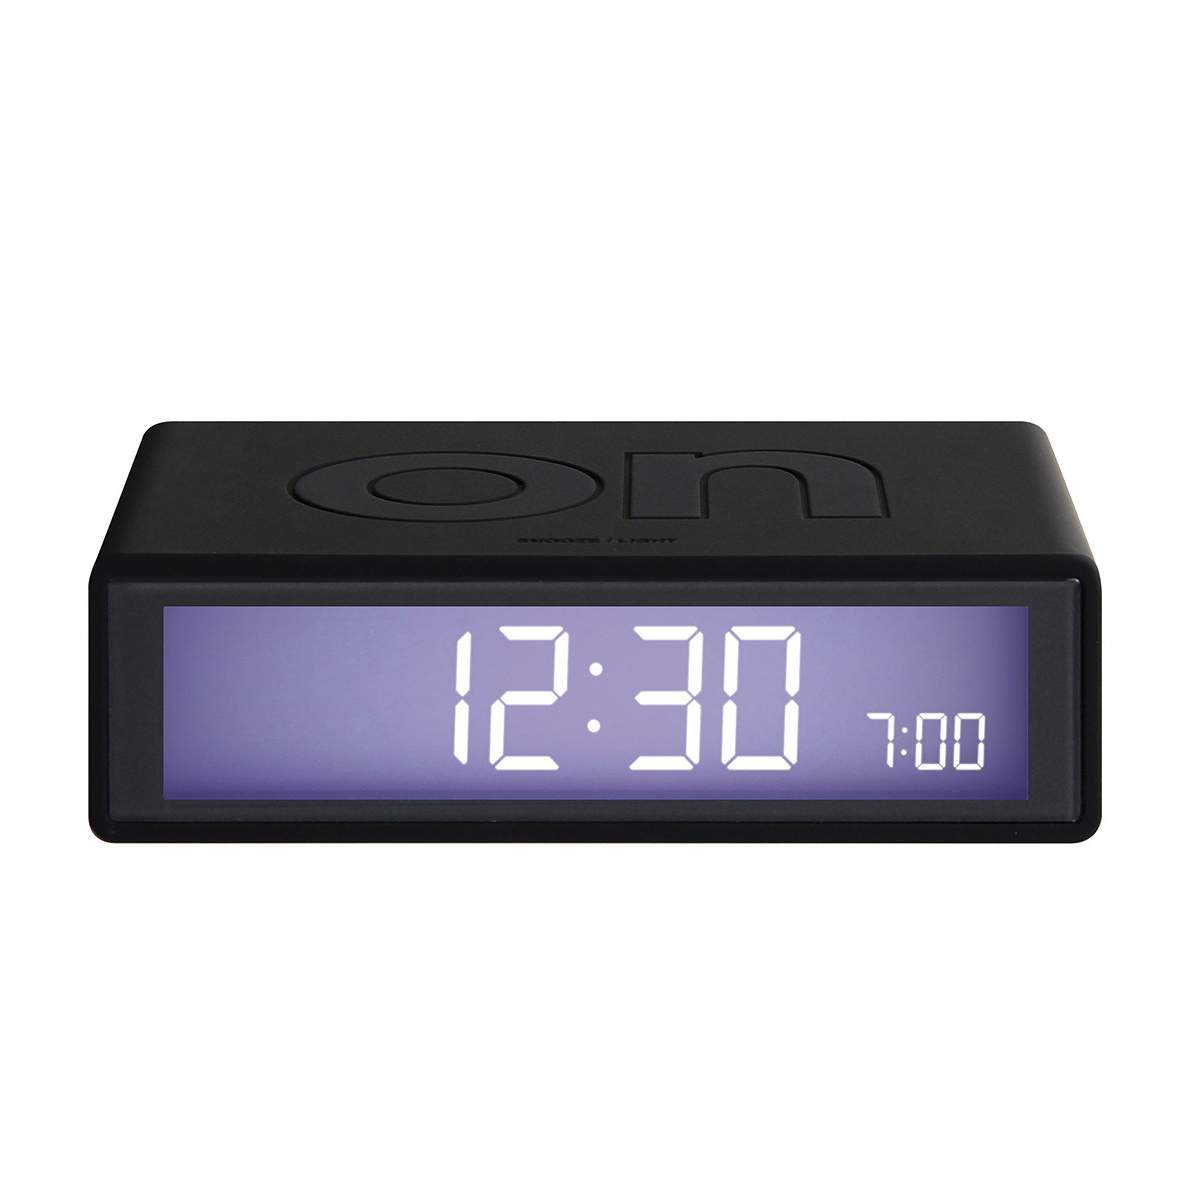 LEXON Flip LCD alarm clock LR150 black | The Design Gift Shop